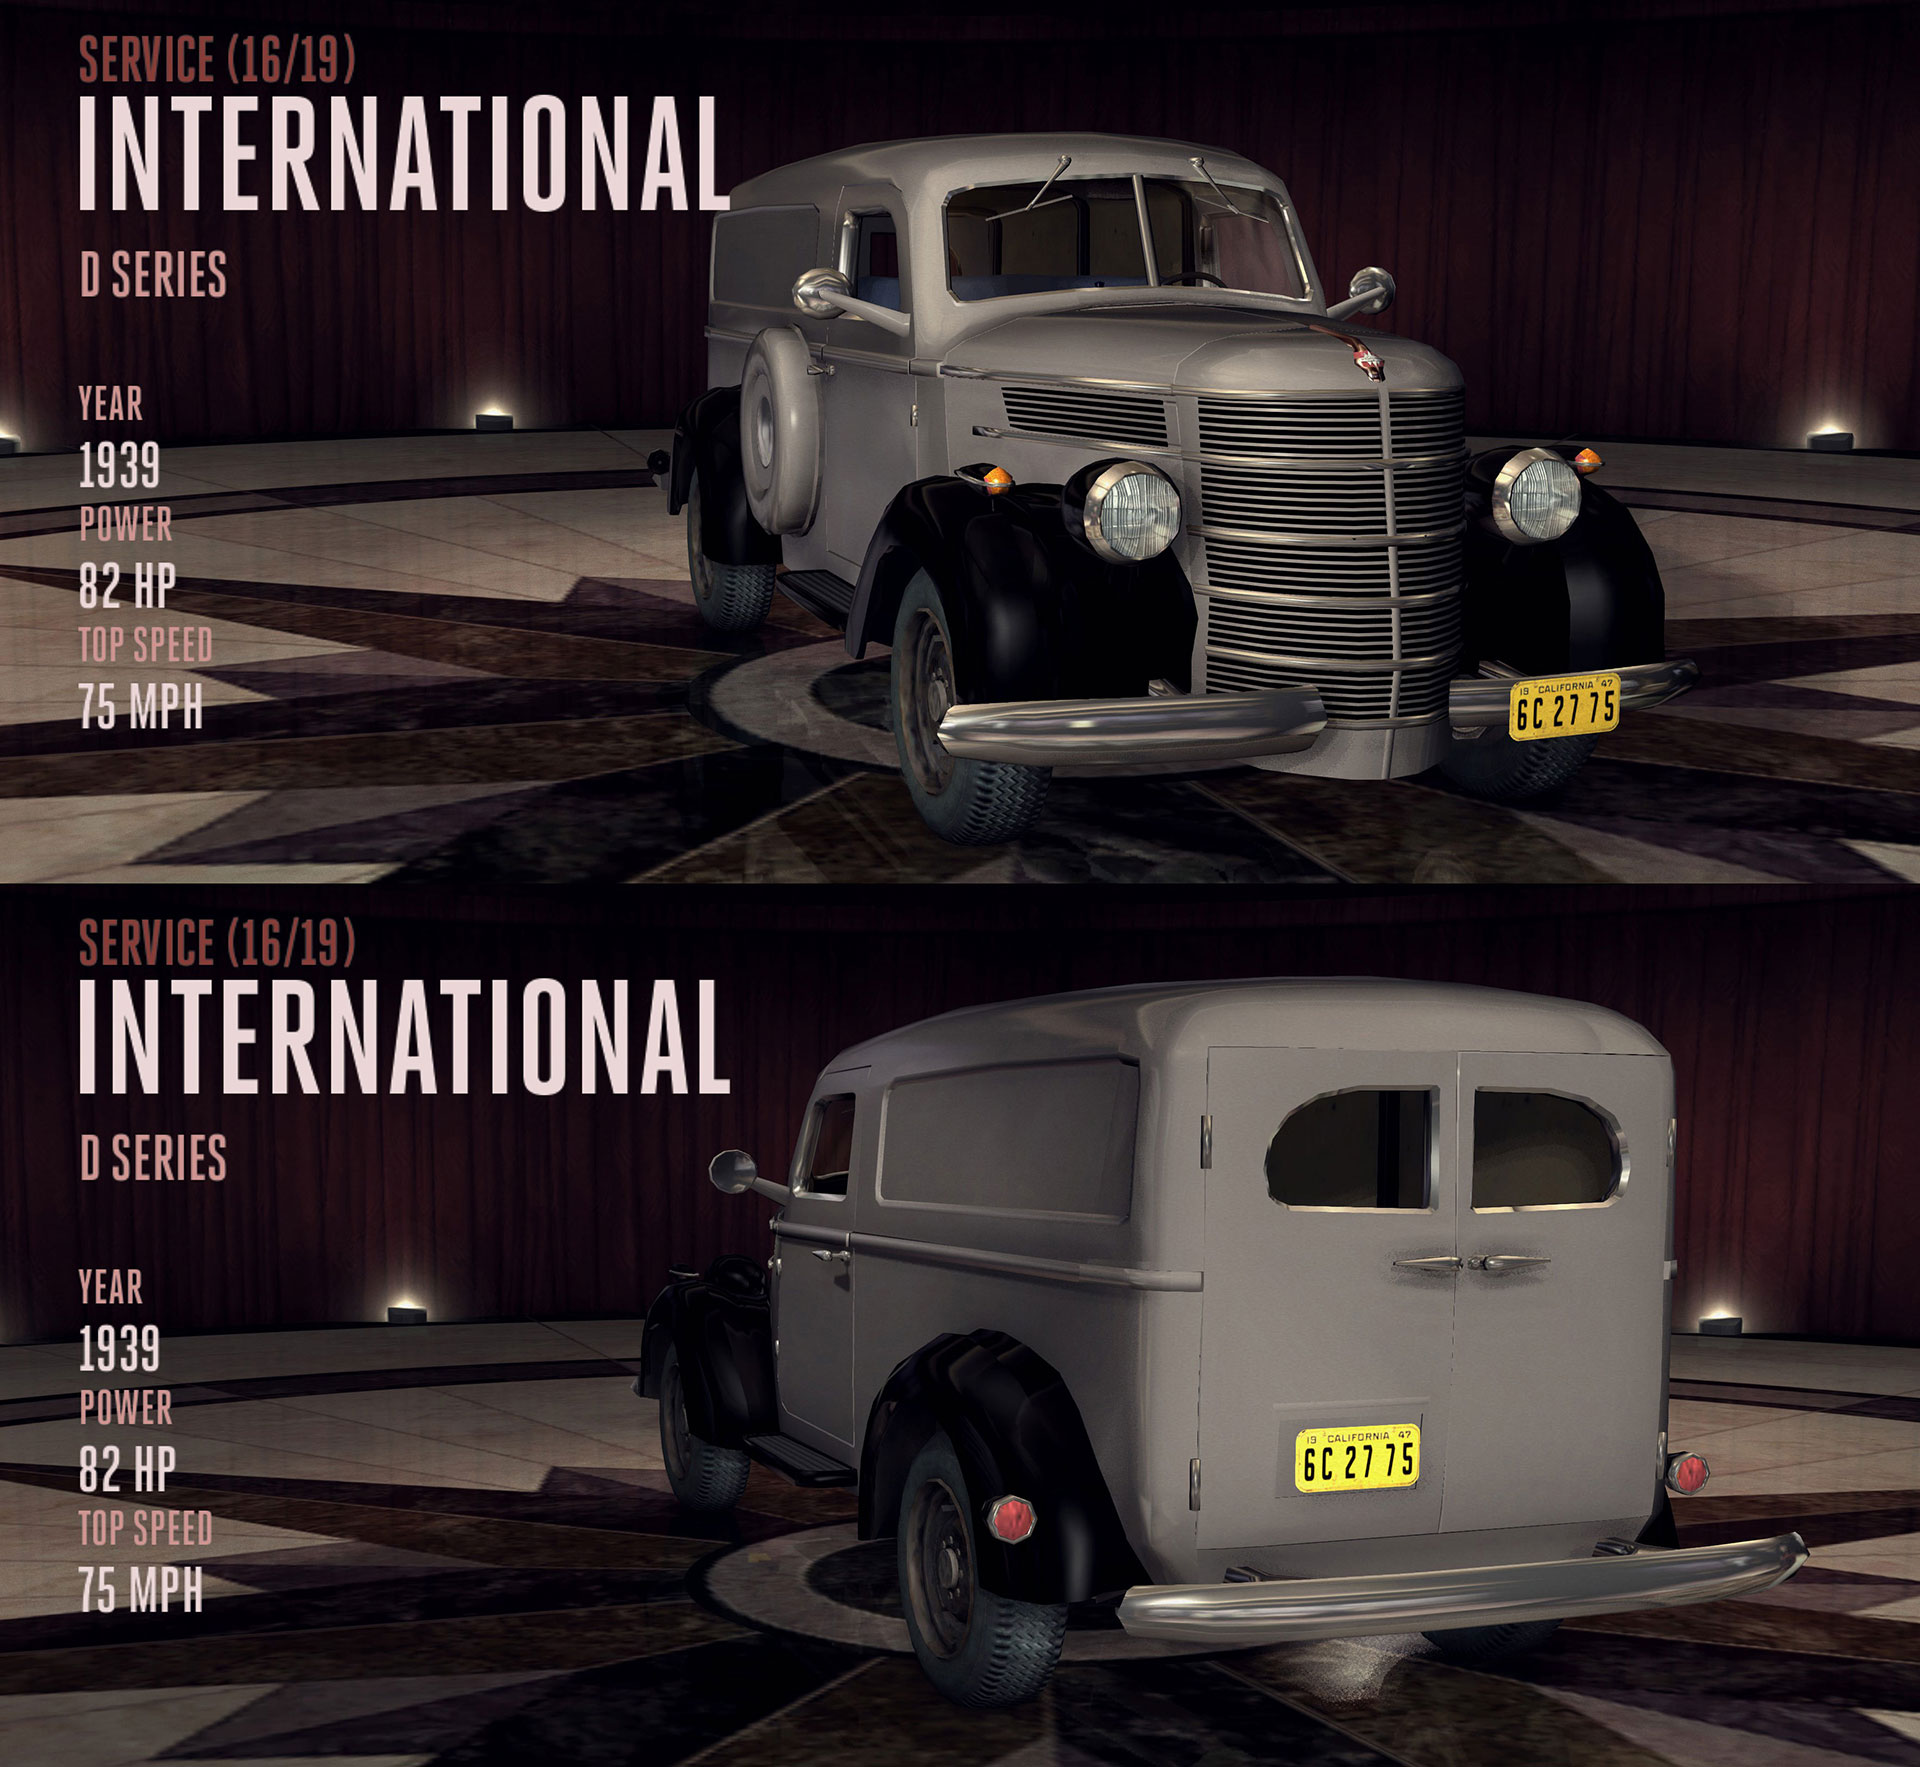 File:1939-international-d-series.jpg